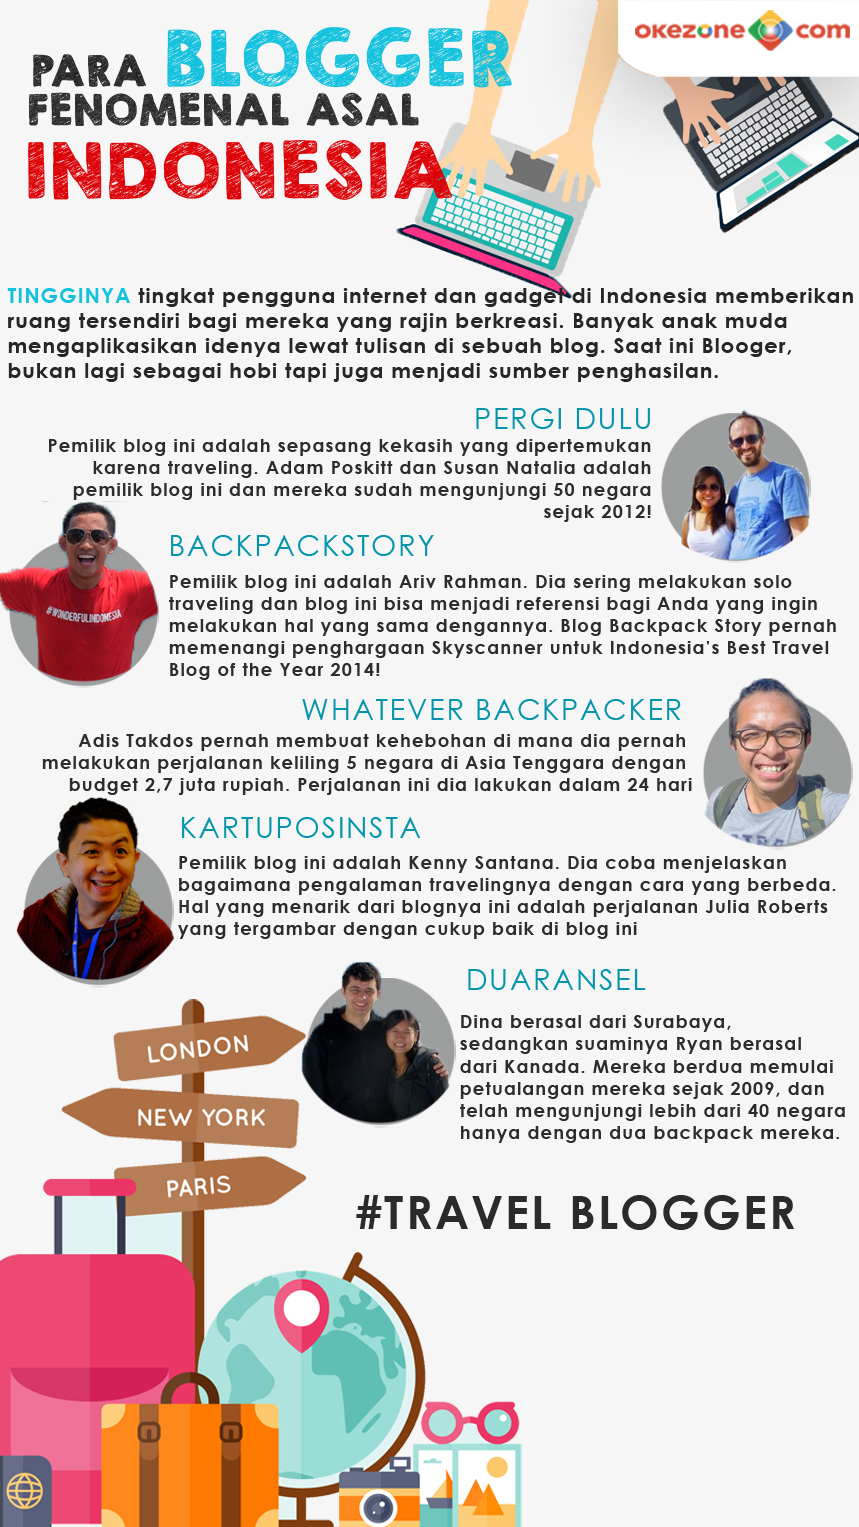 Para Blogger Fenomenal Asal Indonesia TRAVEL BLOGGER -